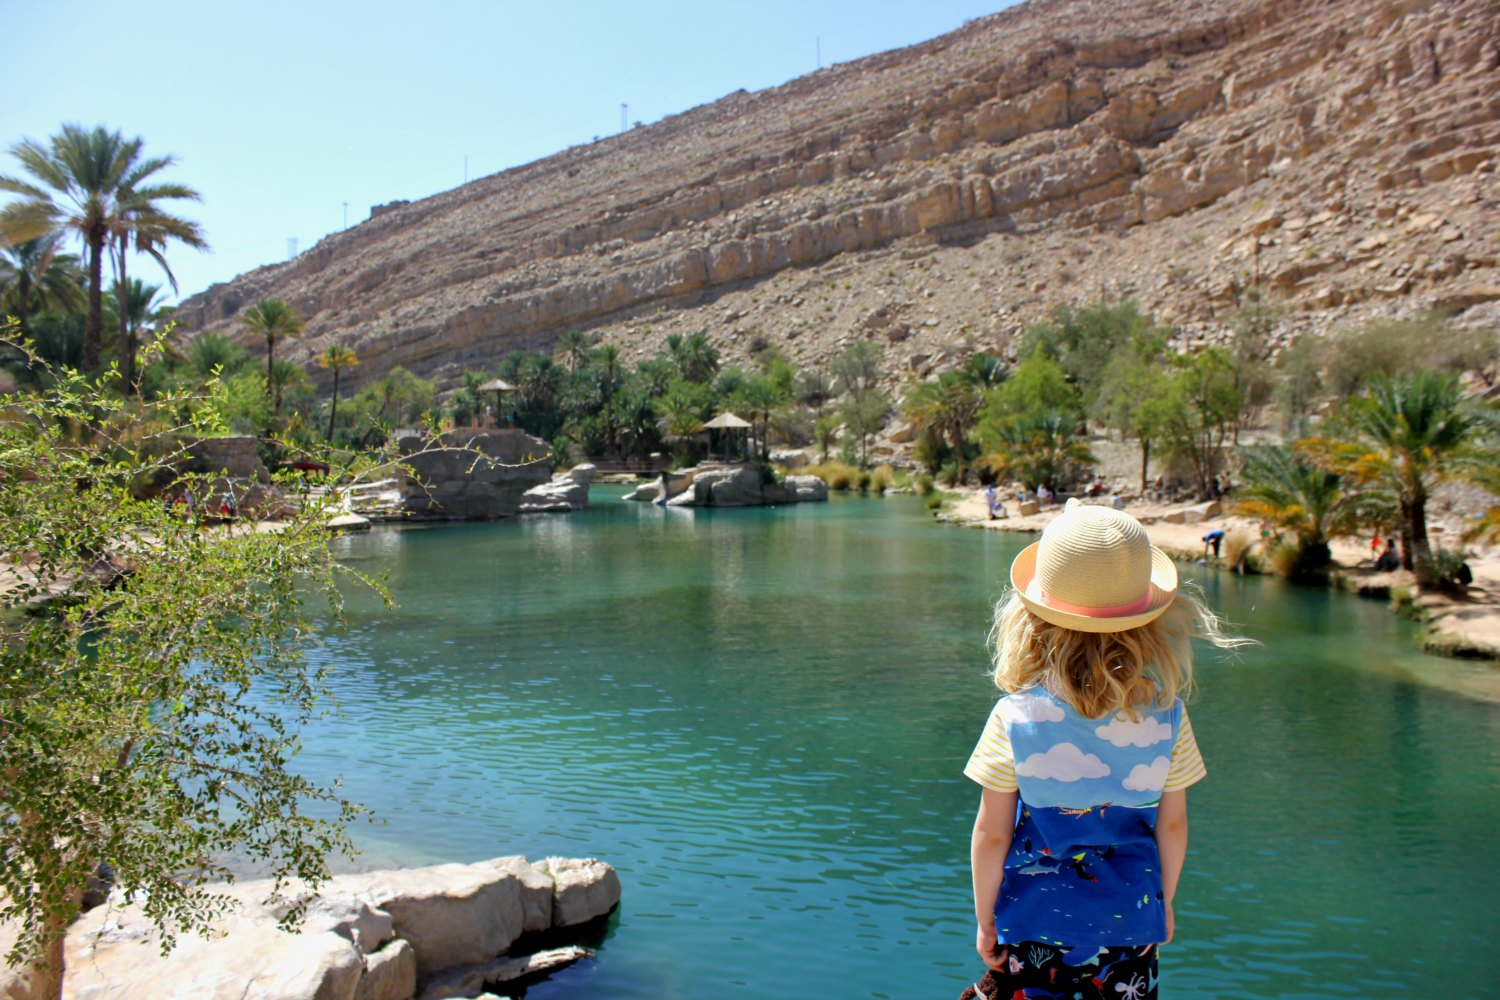 My daughter looks out across the pool to the desert mountains at Wadi Bani Khalid - one of the surprised tucked away in the bone dry peaks, and one of my Oman travel lessons learned